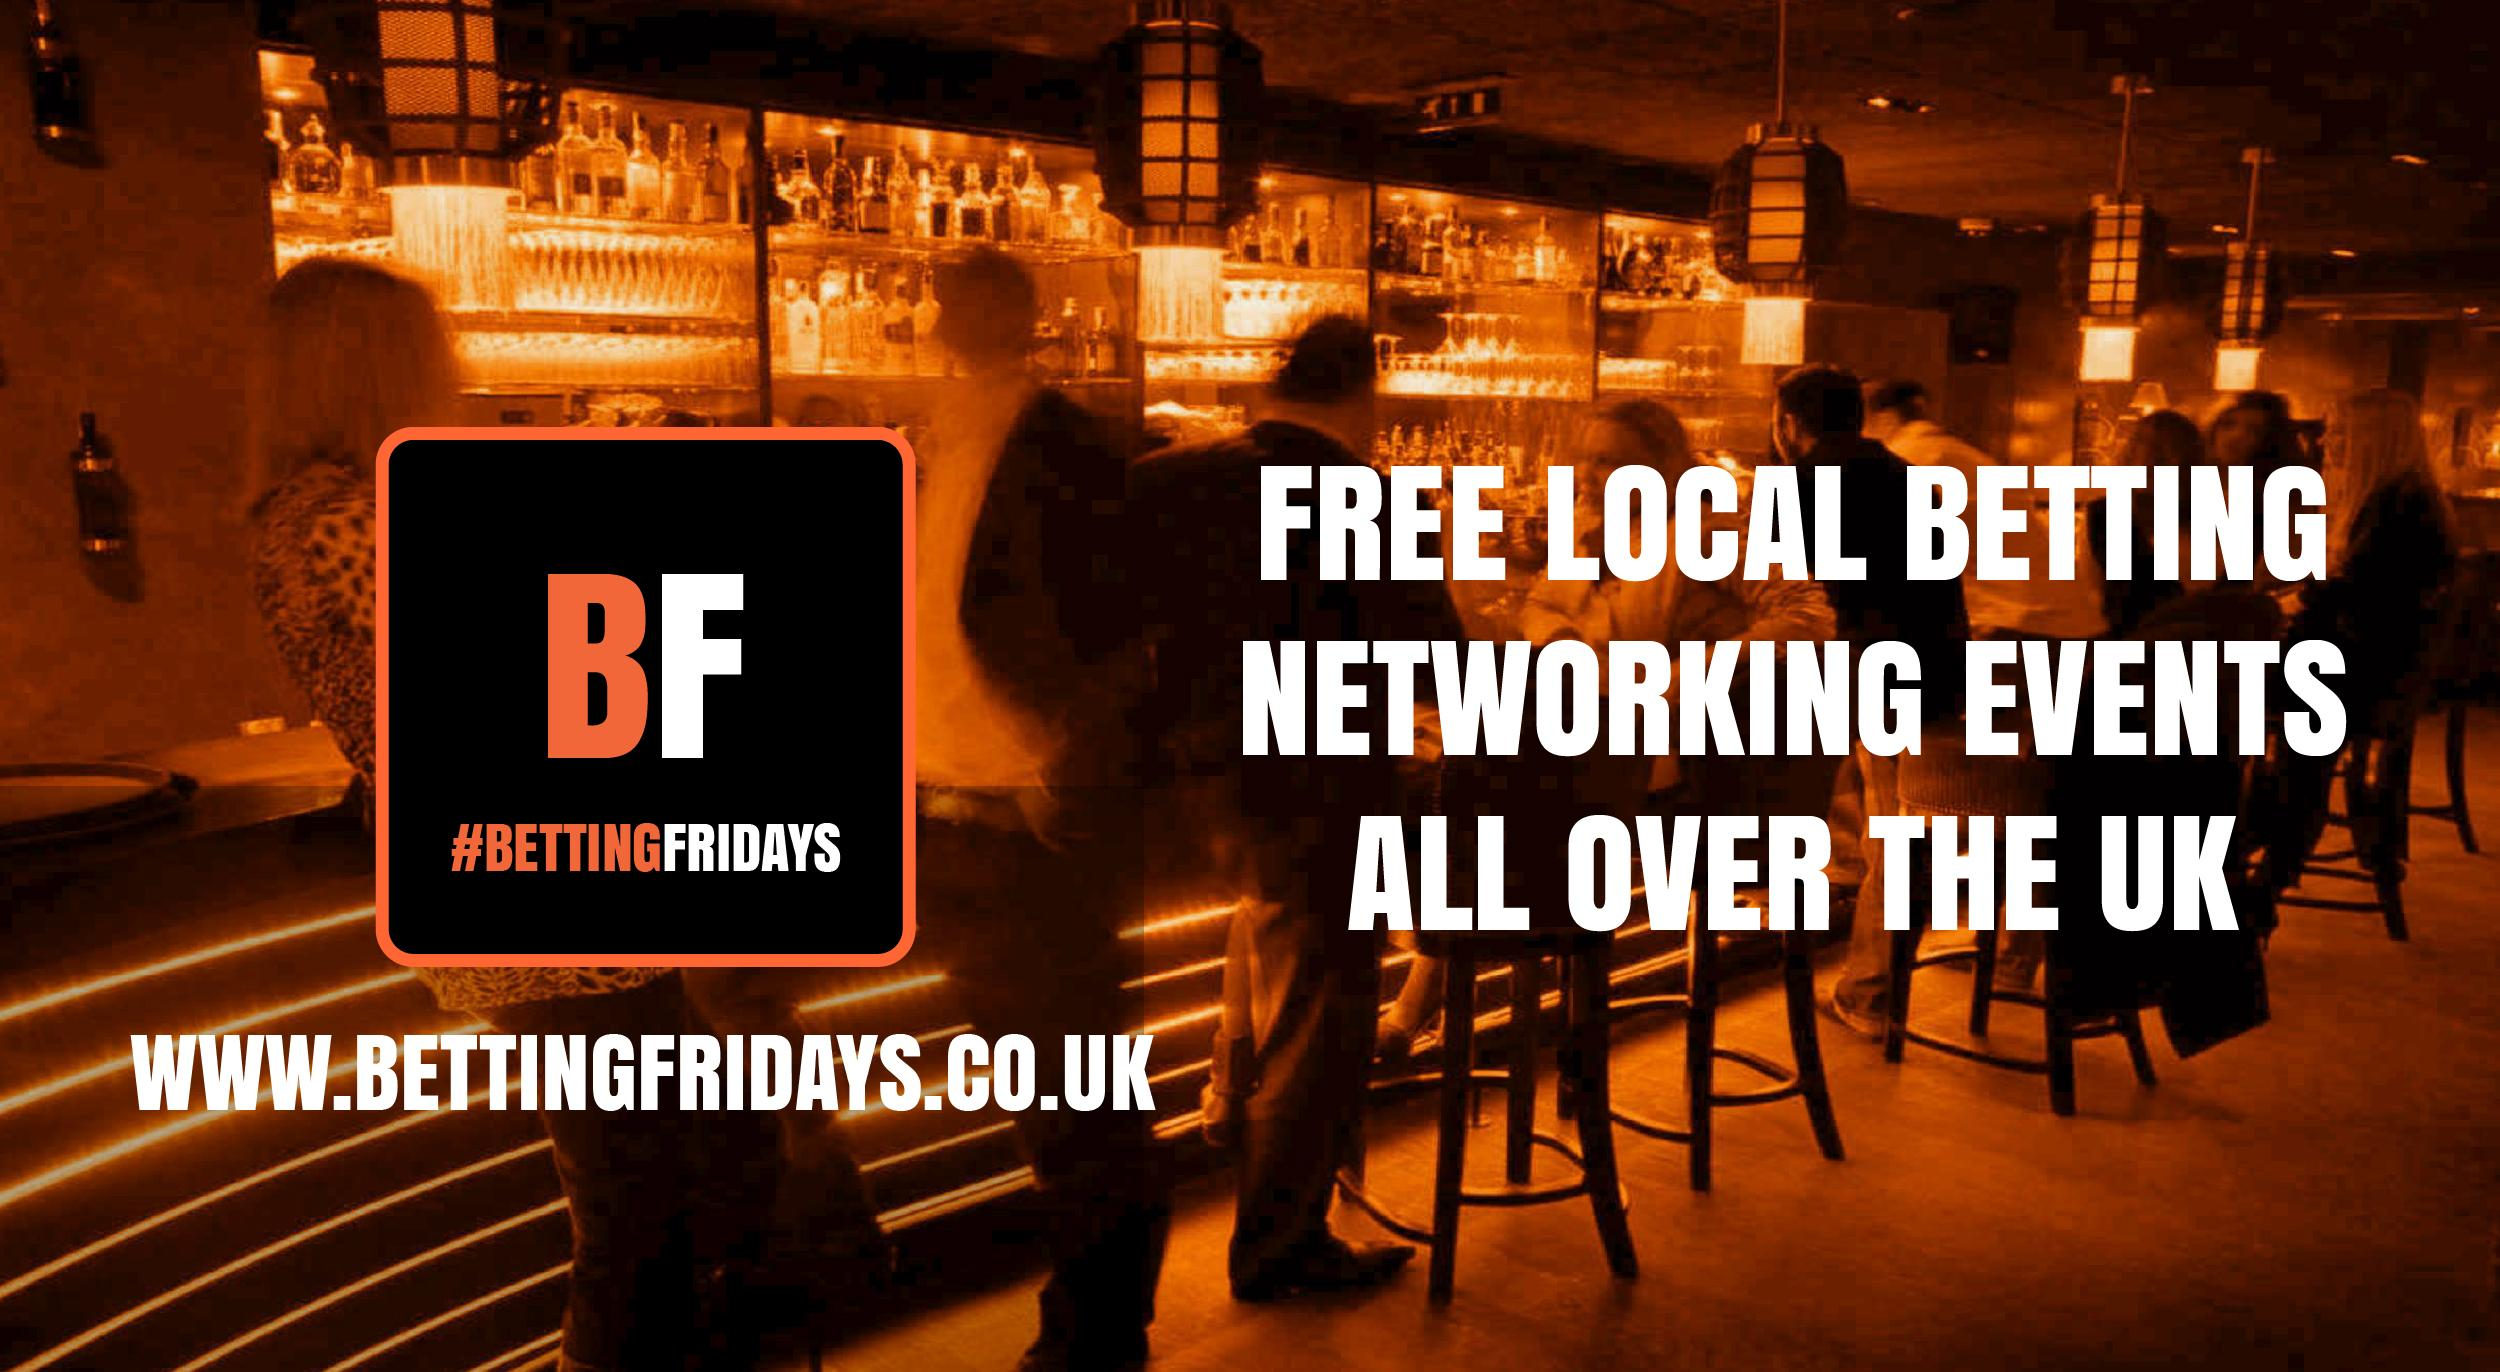 Betting Fridays! Free betting networking event in Runcorn